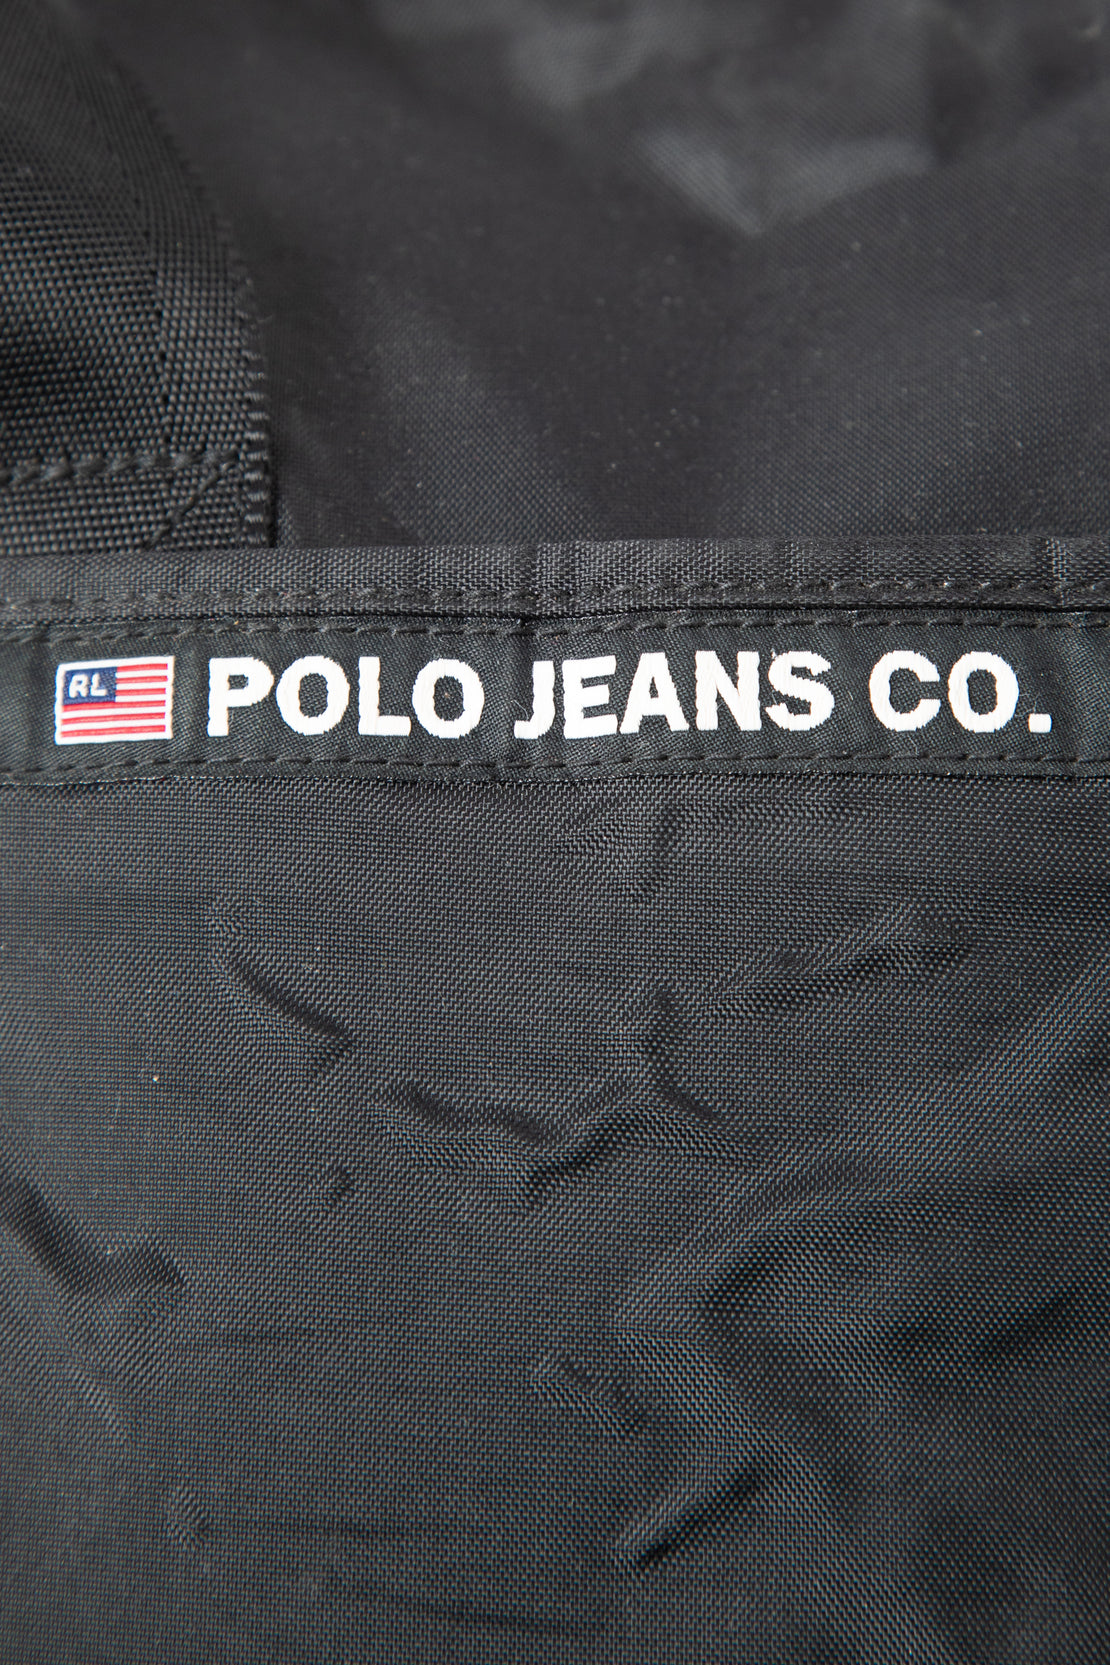 Ralph Lauren Polo Jeans Tote Bag